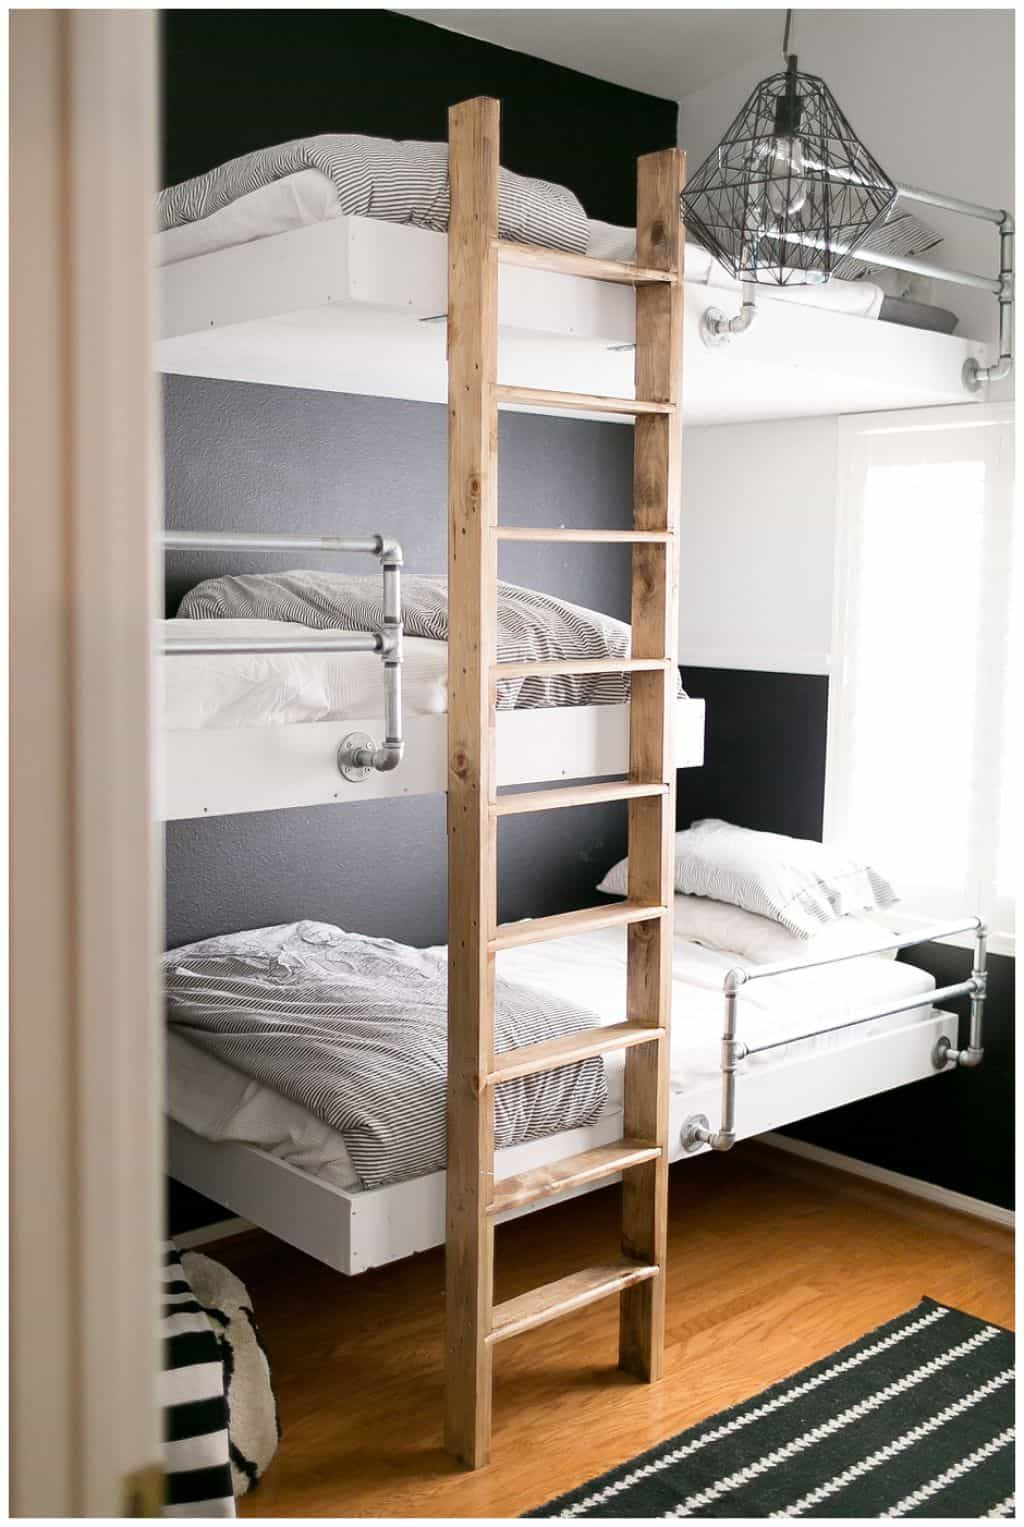 space saver triple bunk bed in 2020 bunk bed rooms bunk on wonderful ideas of bunk beds for your kids bedroom id=28228